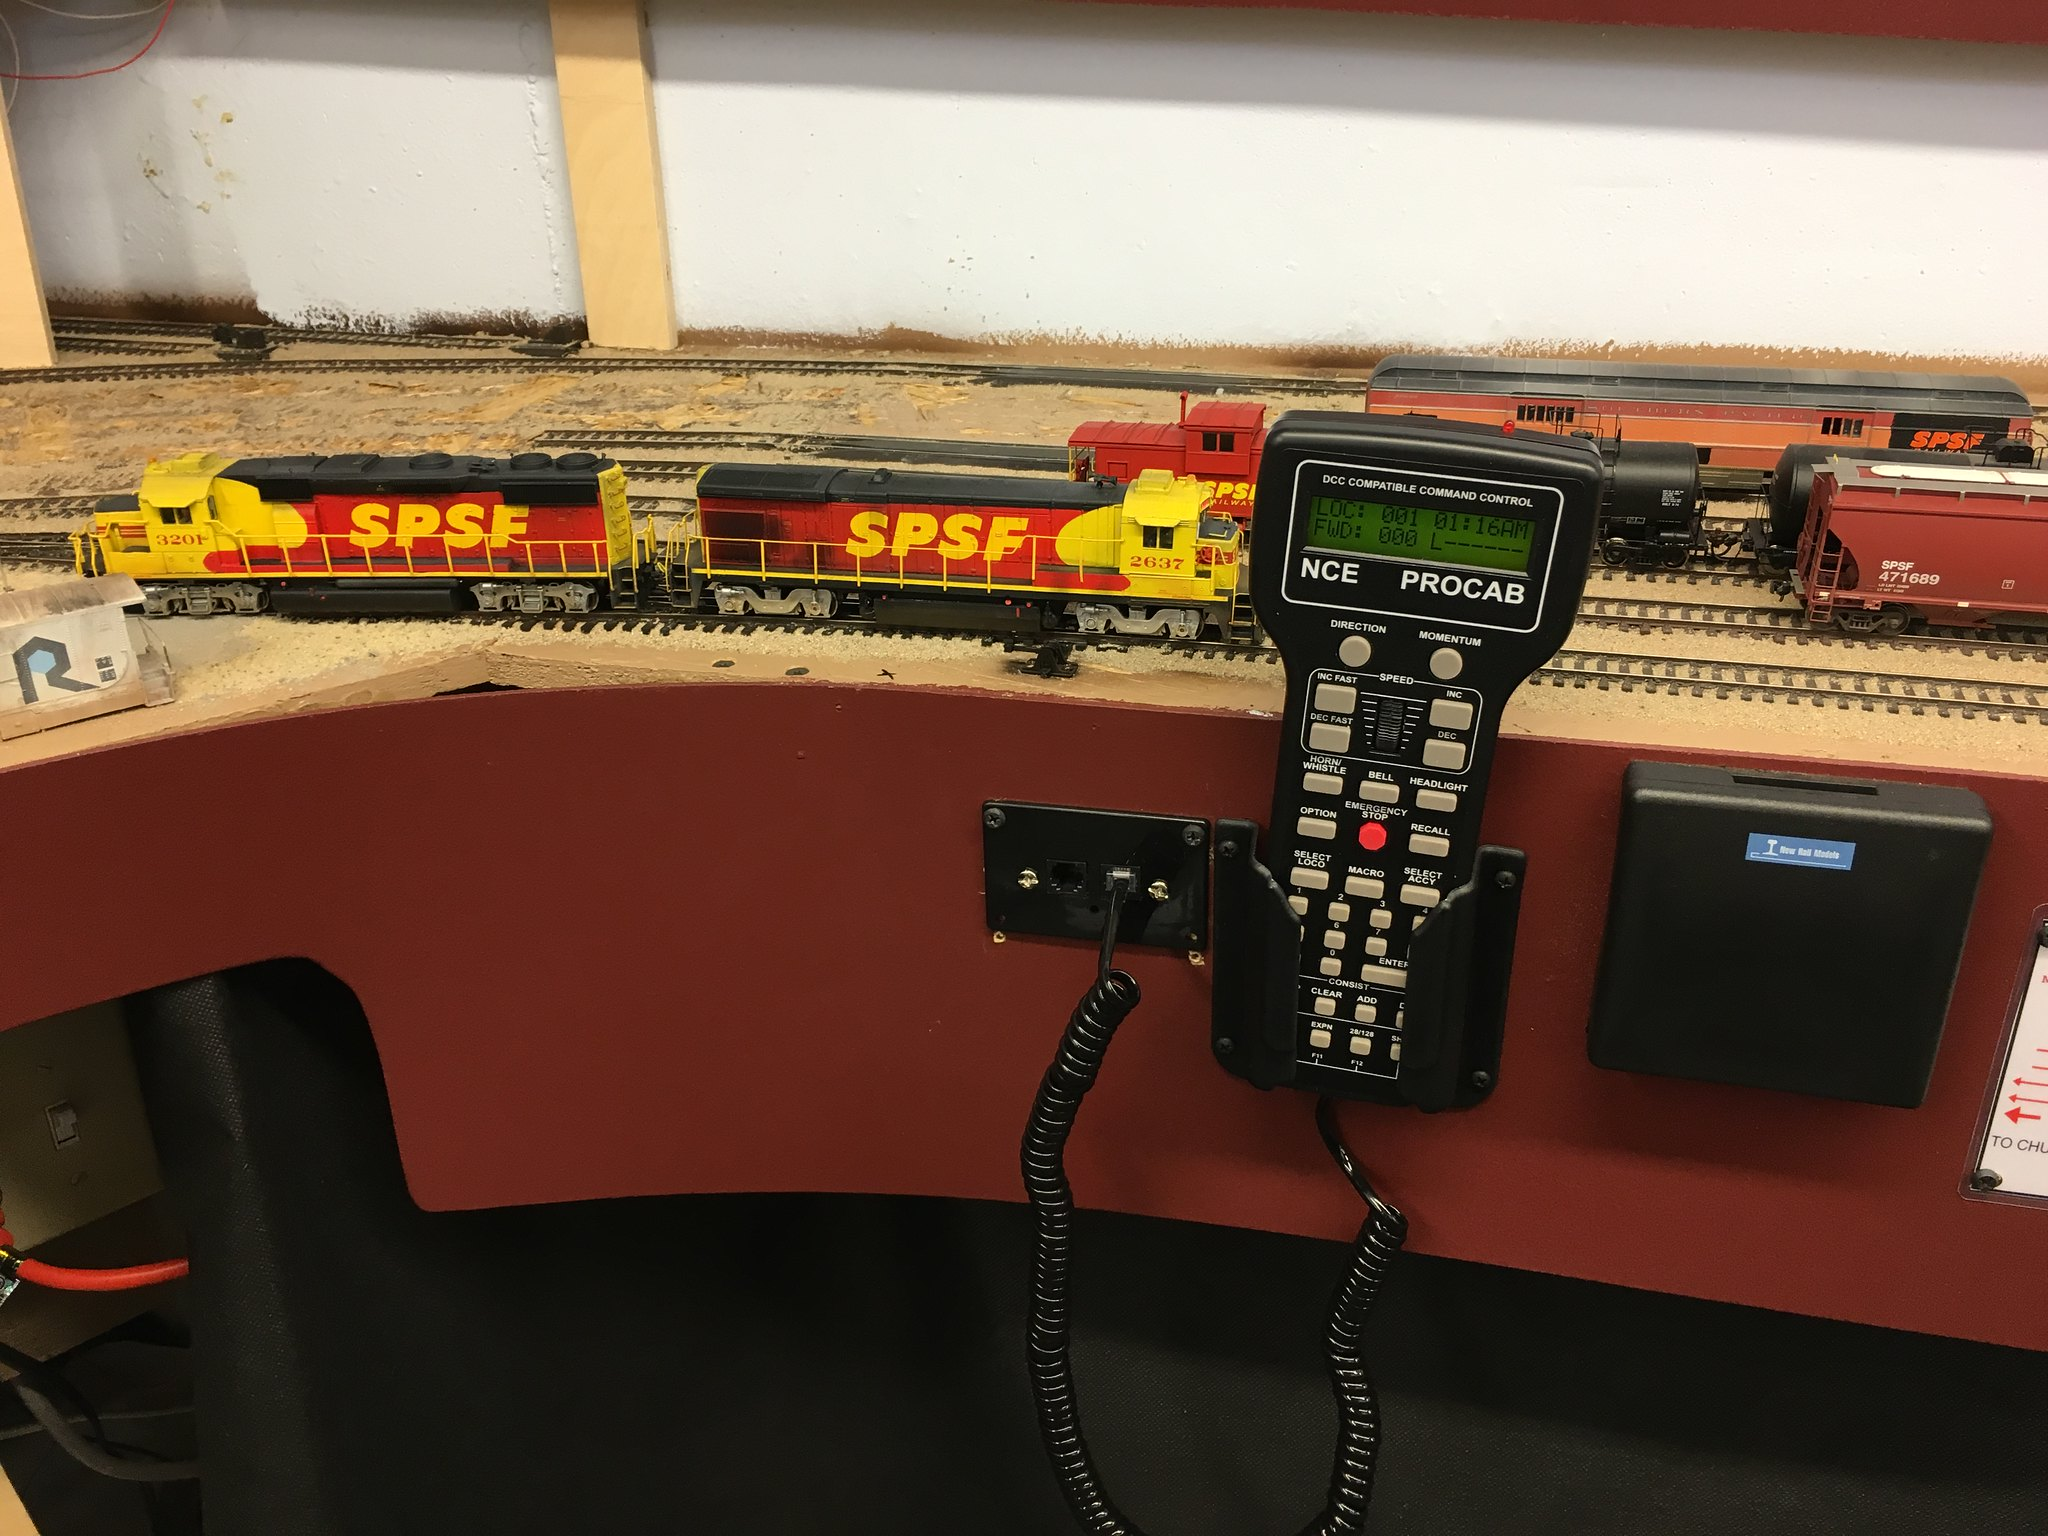 Spsf Meadow Sub Converting From Digitrax To Nce On A Small Mid Size Troubleshooting Wiring Problems With The Loconet Over Past Three Weeks I Have Converted My Layout Dcc System What Follows Is Personal Experience Conversion For